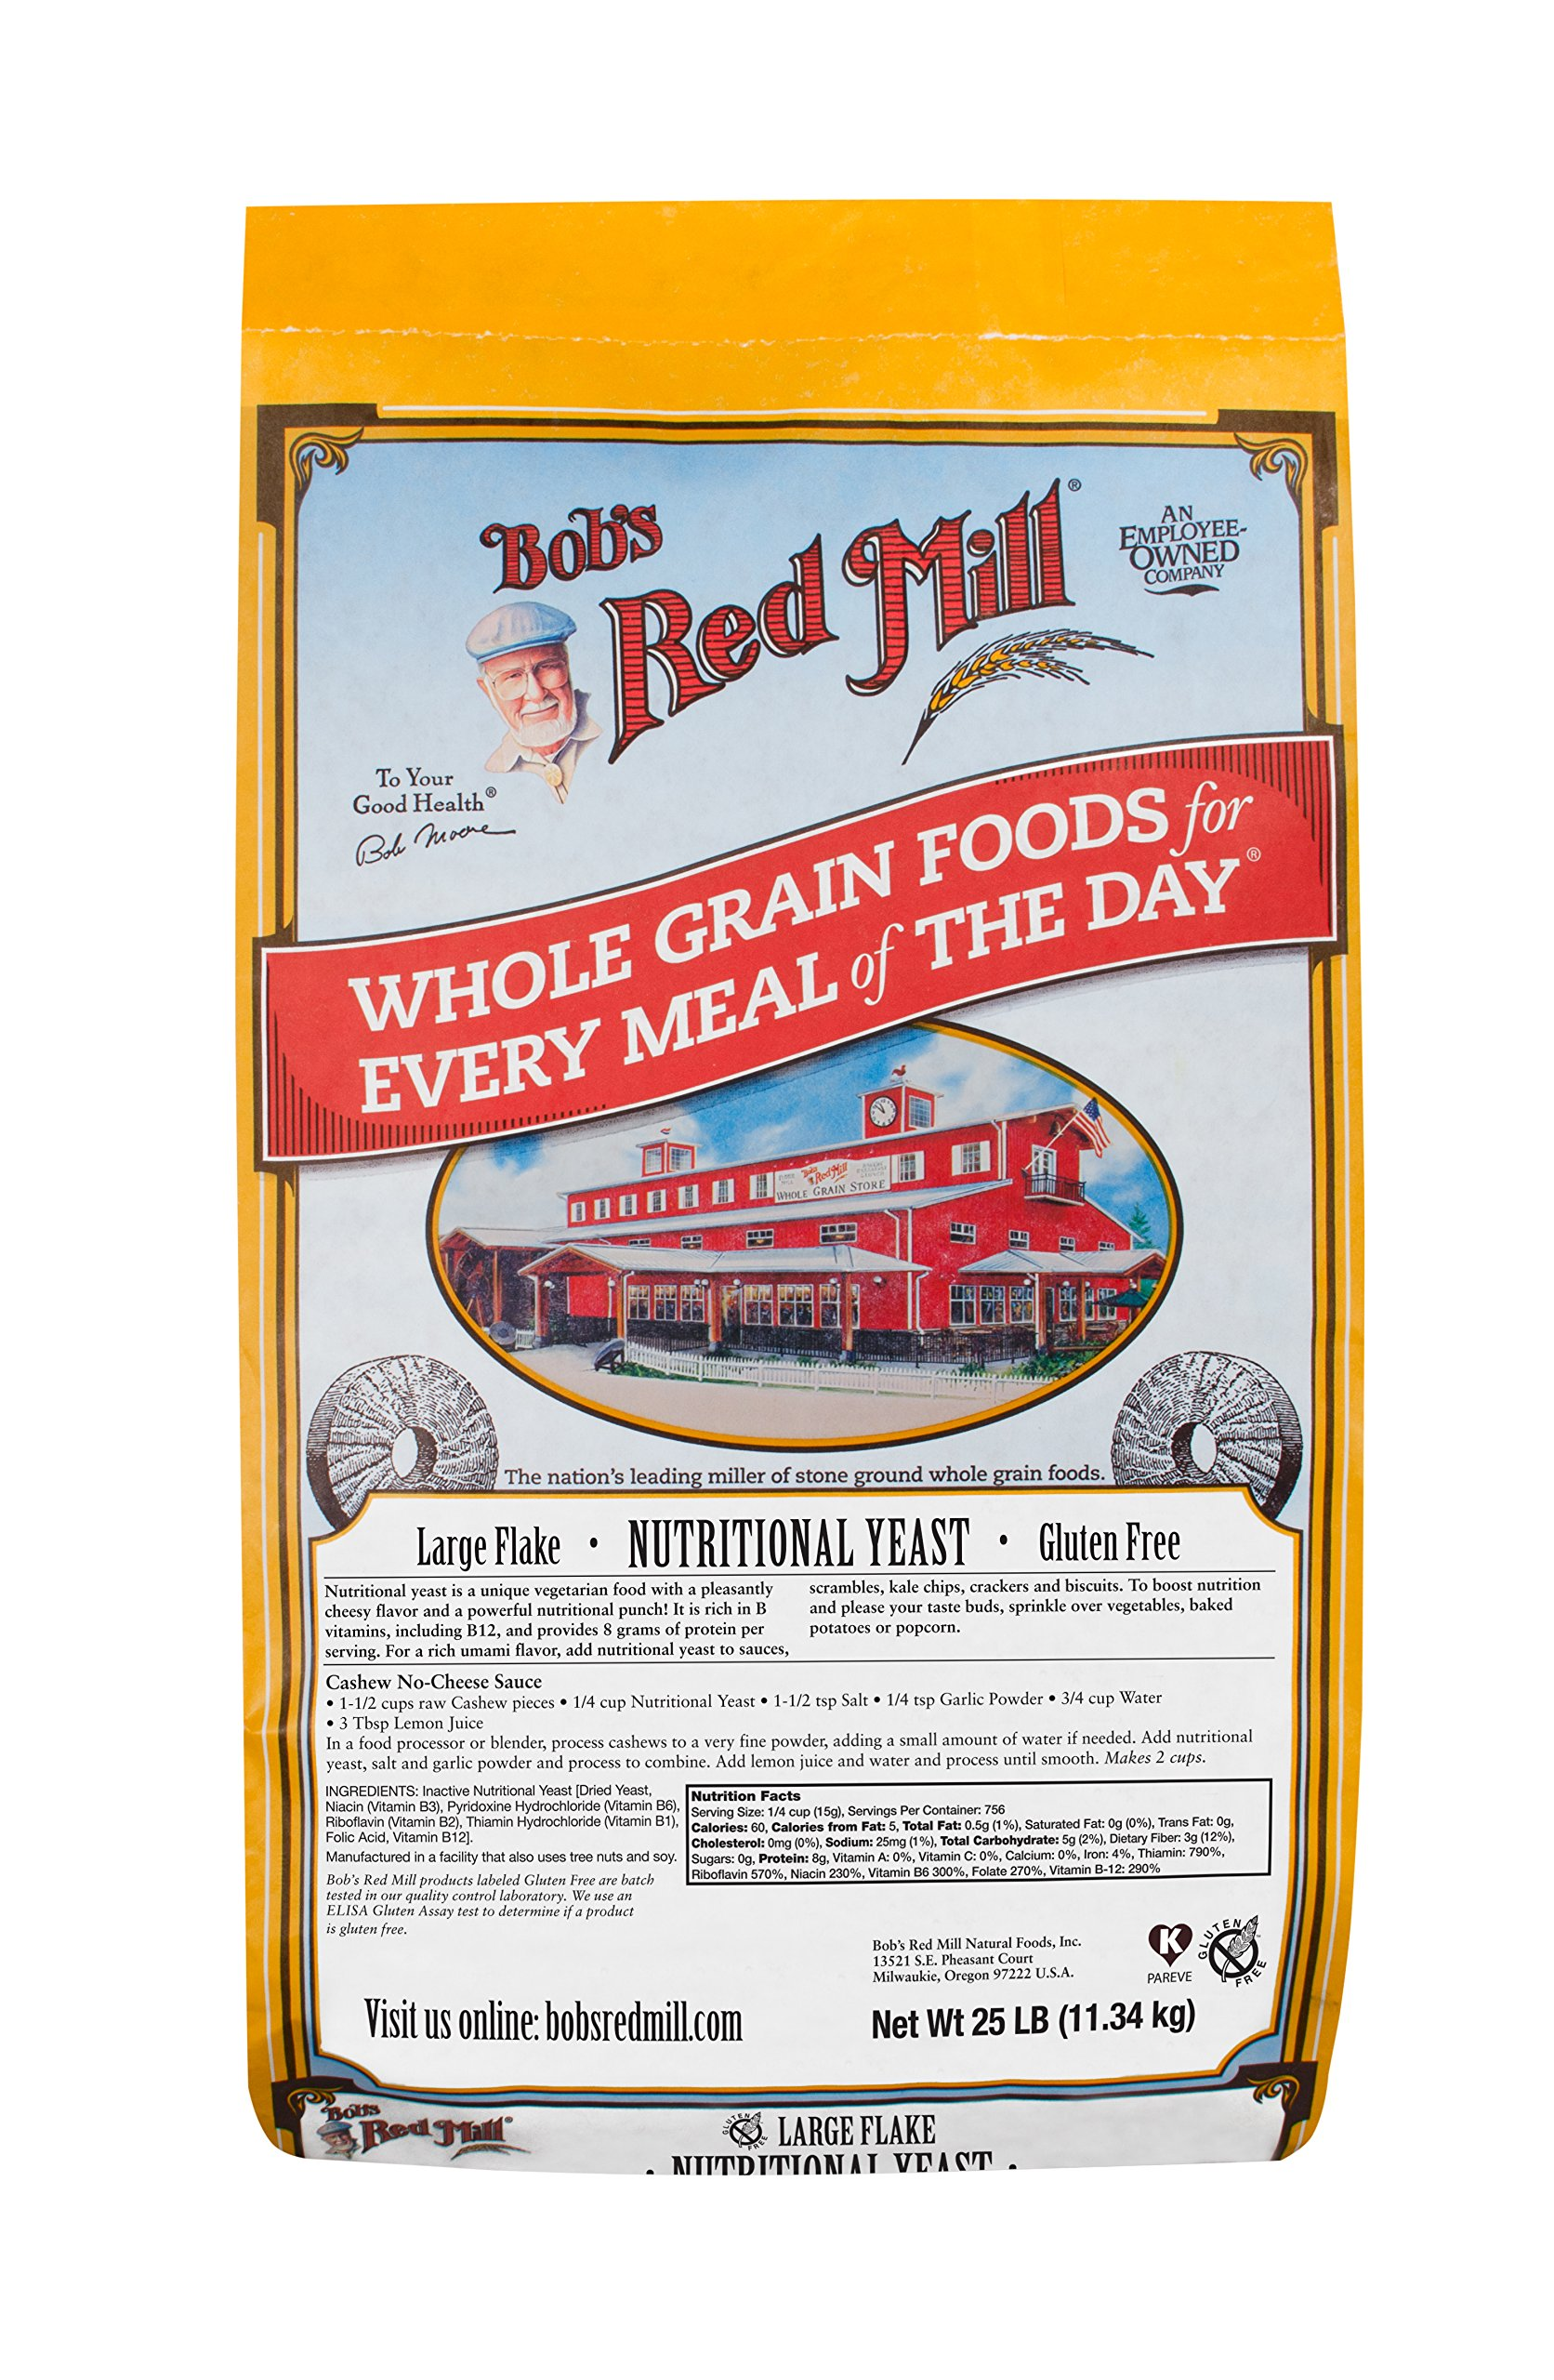 Bob's Red Mill Gluten Free Large Flake Nutritional Yeast, 25 Pound by Bob's Red Mill (Image #1)